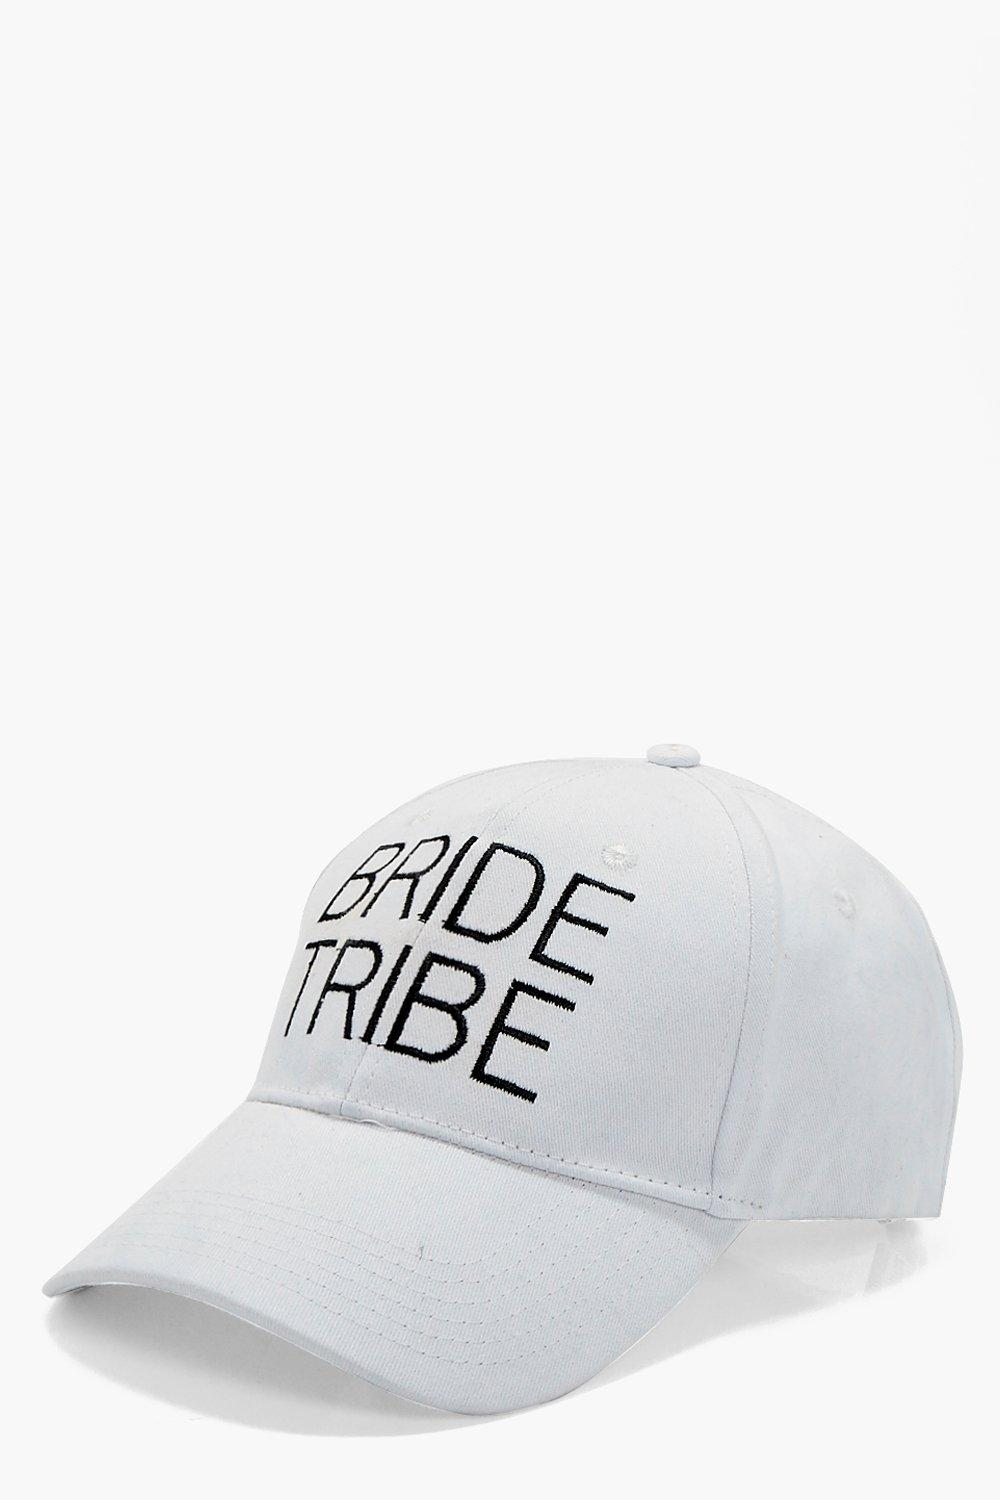 Bride Tribe Slogan Hat - white - Olivia Bride Trib